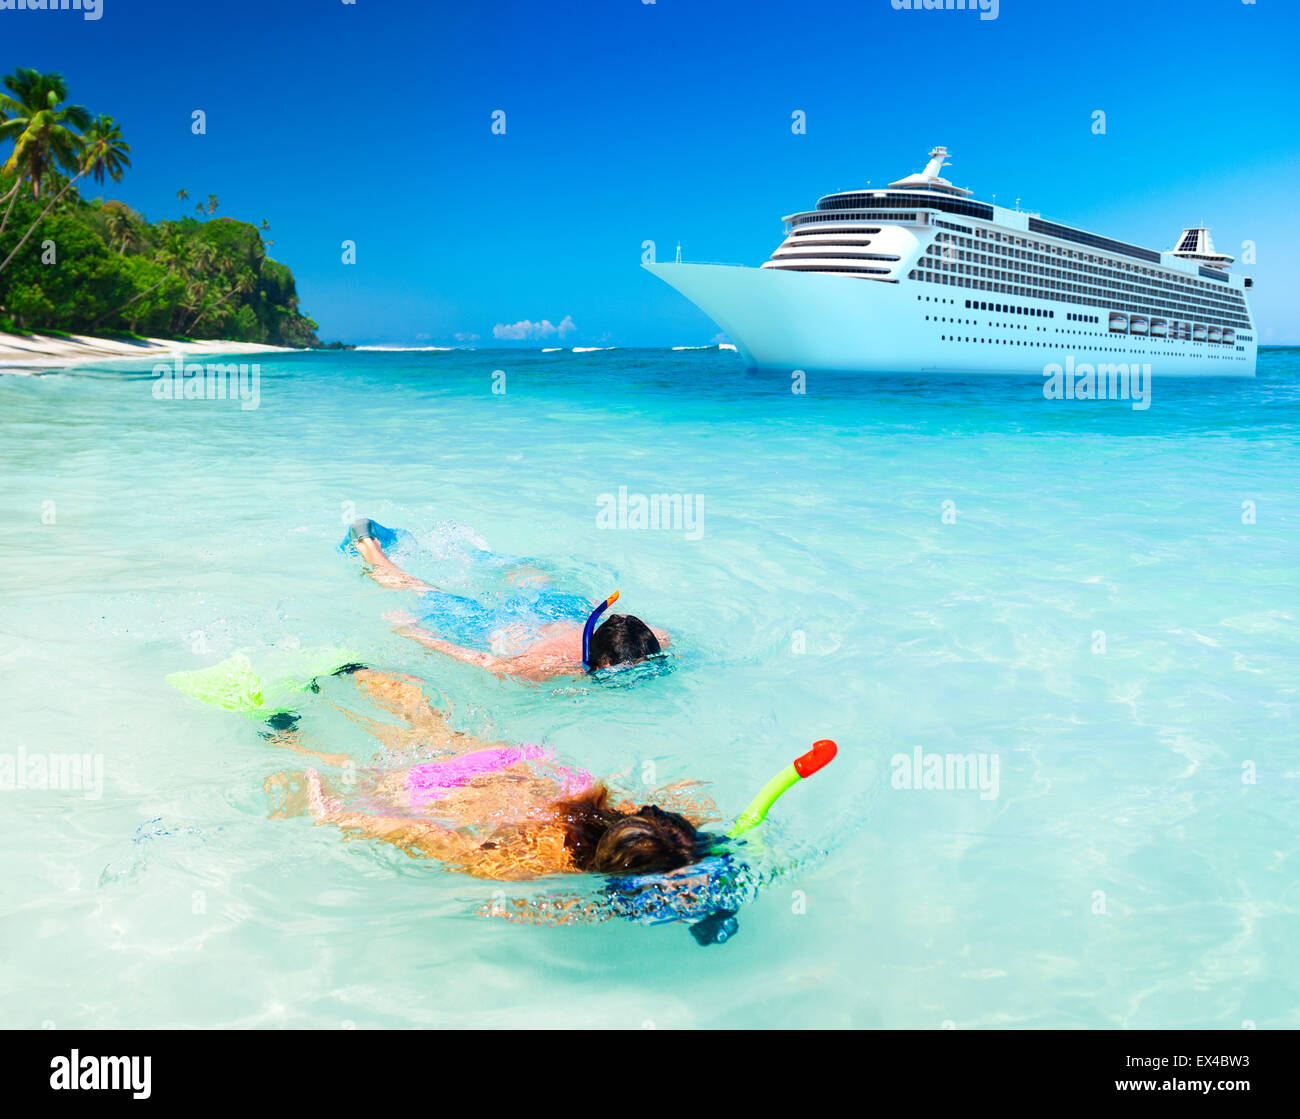 Couple Snorkeling Activity Ocean Cruise Concept - Stock Image